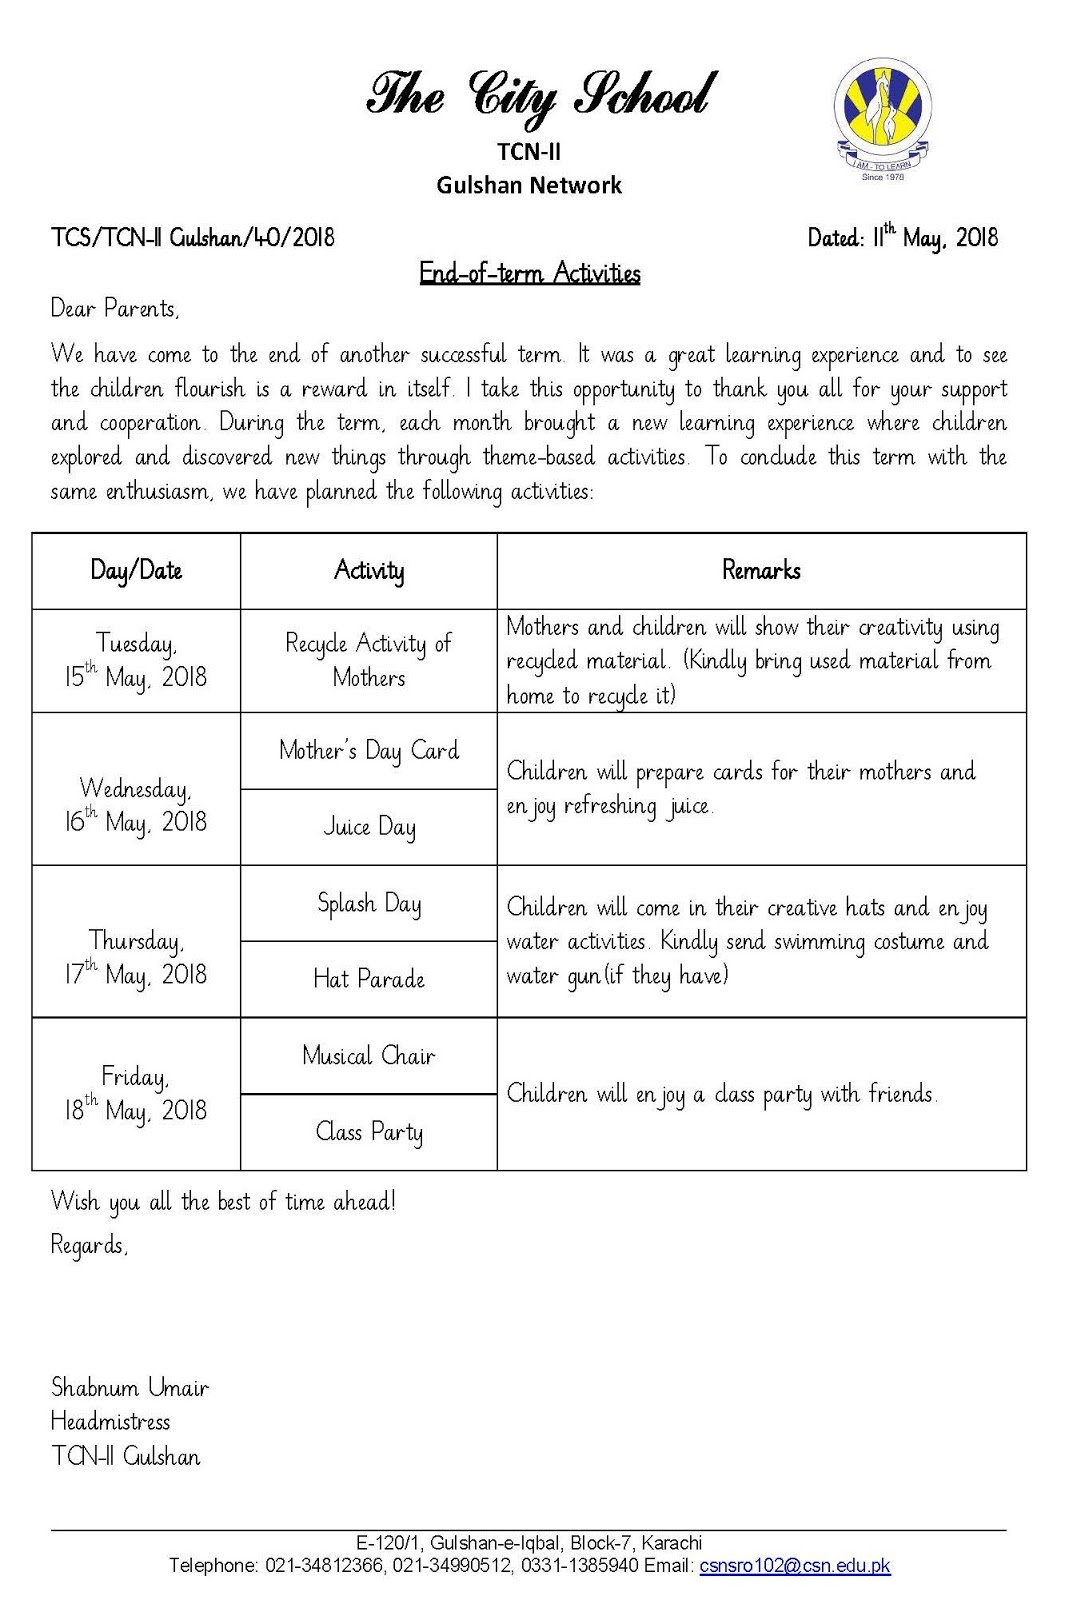 Sr Gulshan The City Nursery Ii Circulars For End Of Term Activities And Recycle Activity Of Mothers